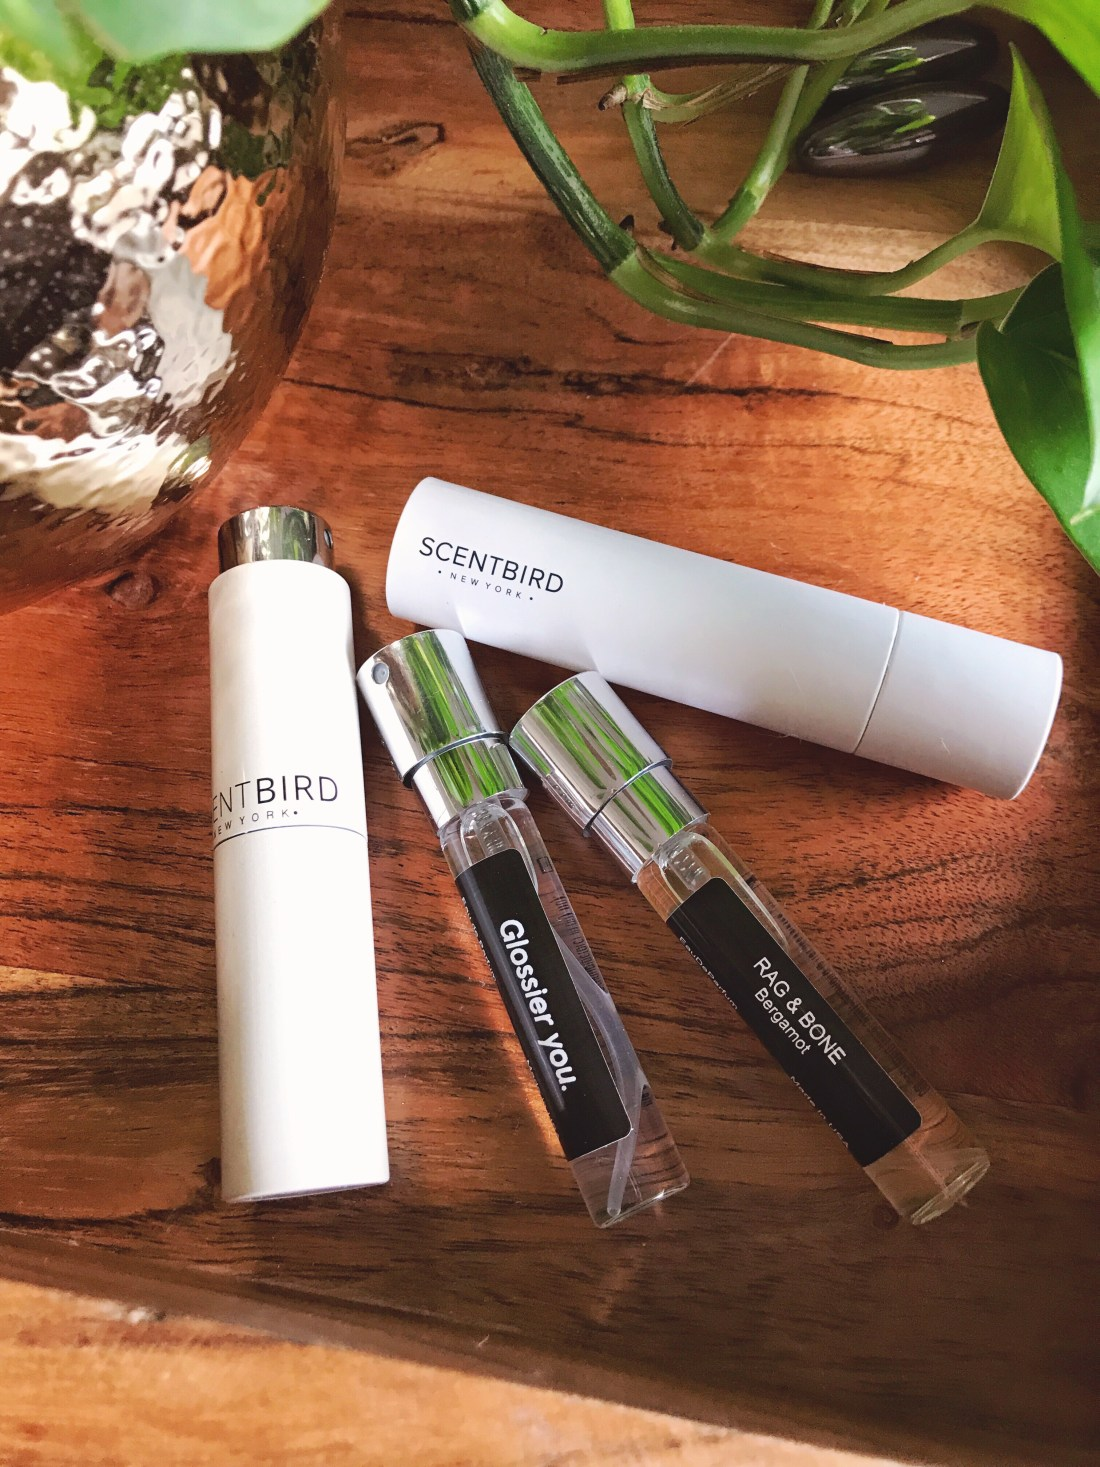 Scentbird Fragrance Subscription Service Review